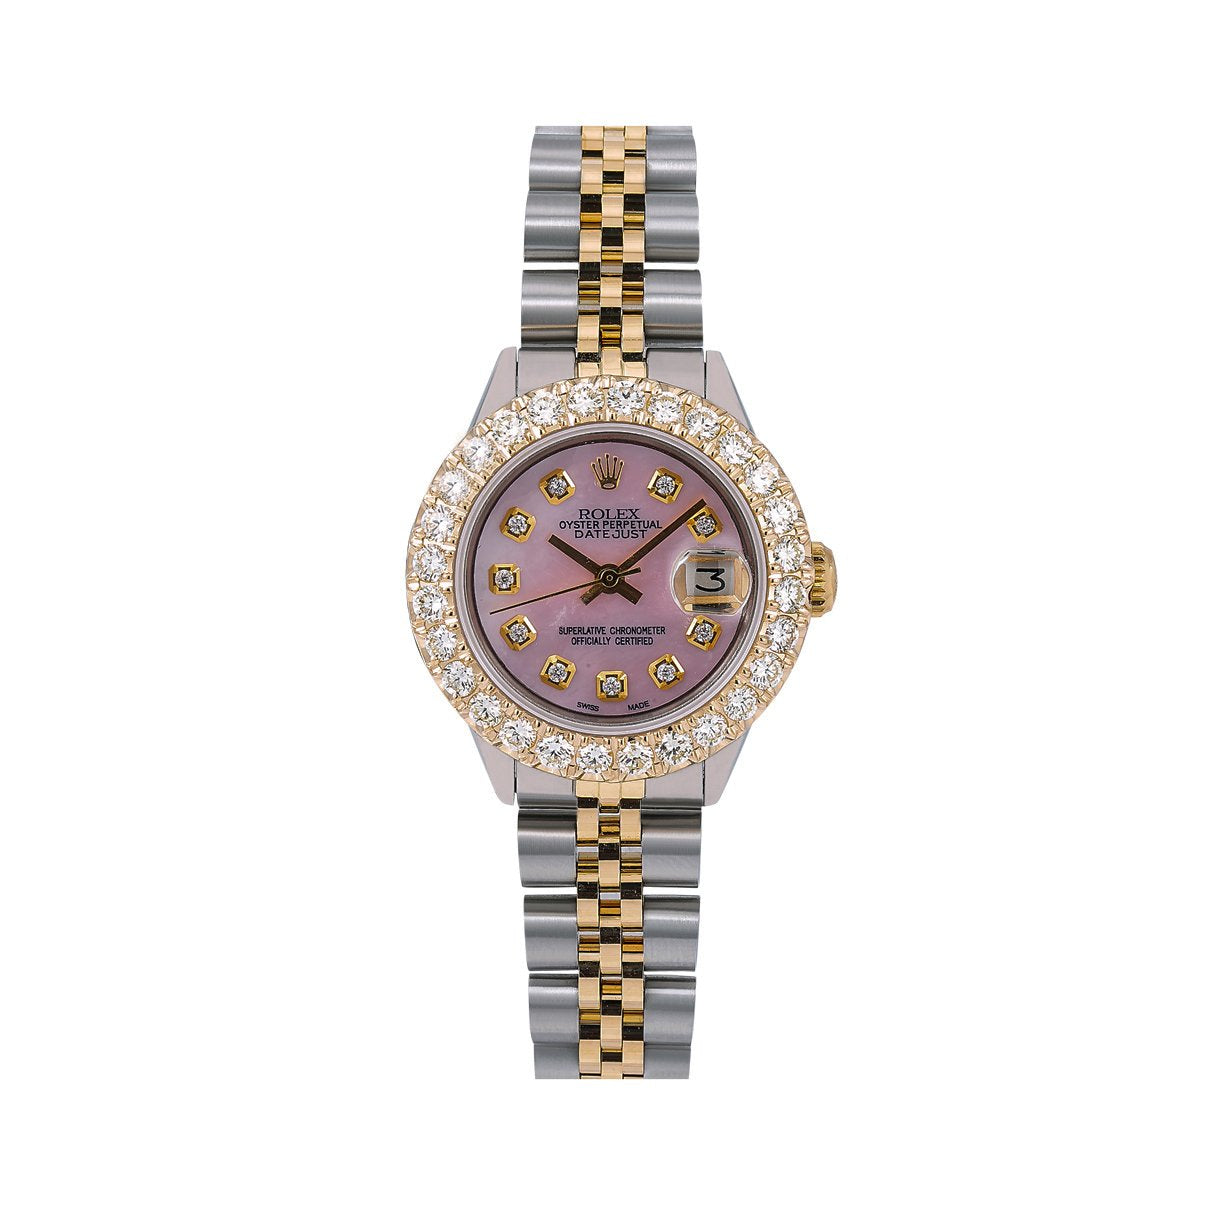 Rolex Lady-Datejust Diamond Watch, 6917 26mm, Pink Diamond Dial With Two Tone Bracelet